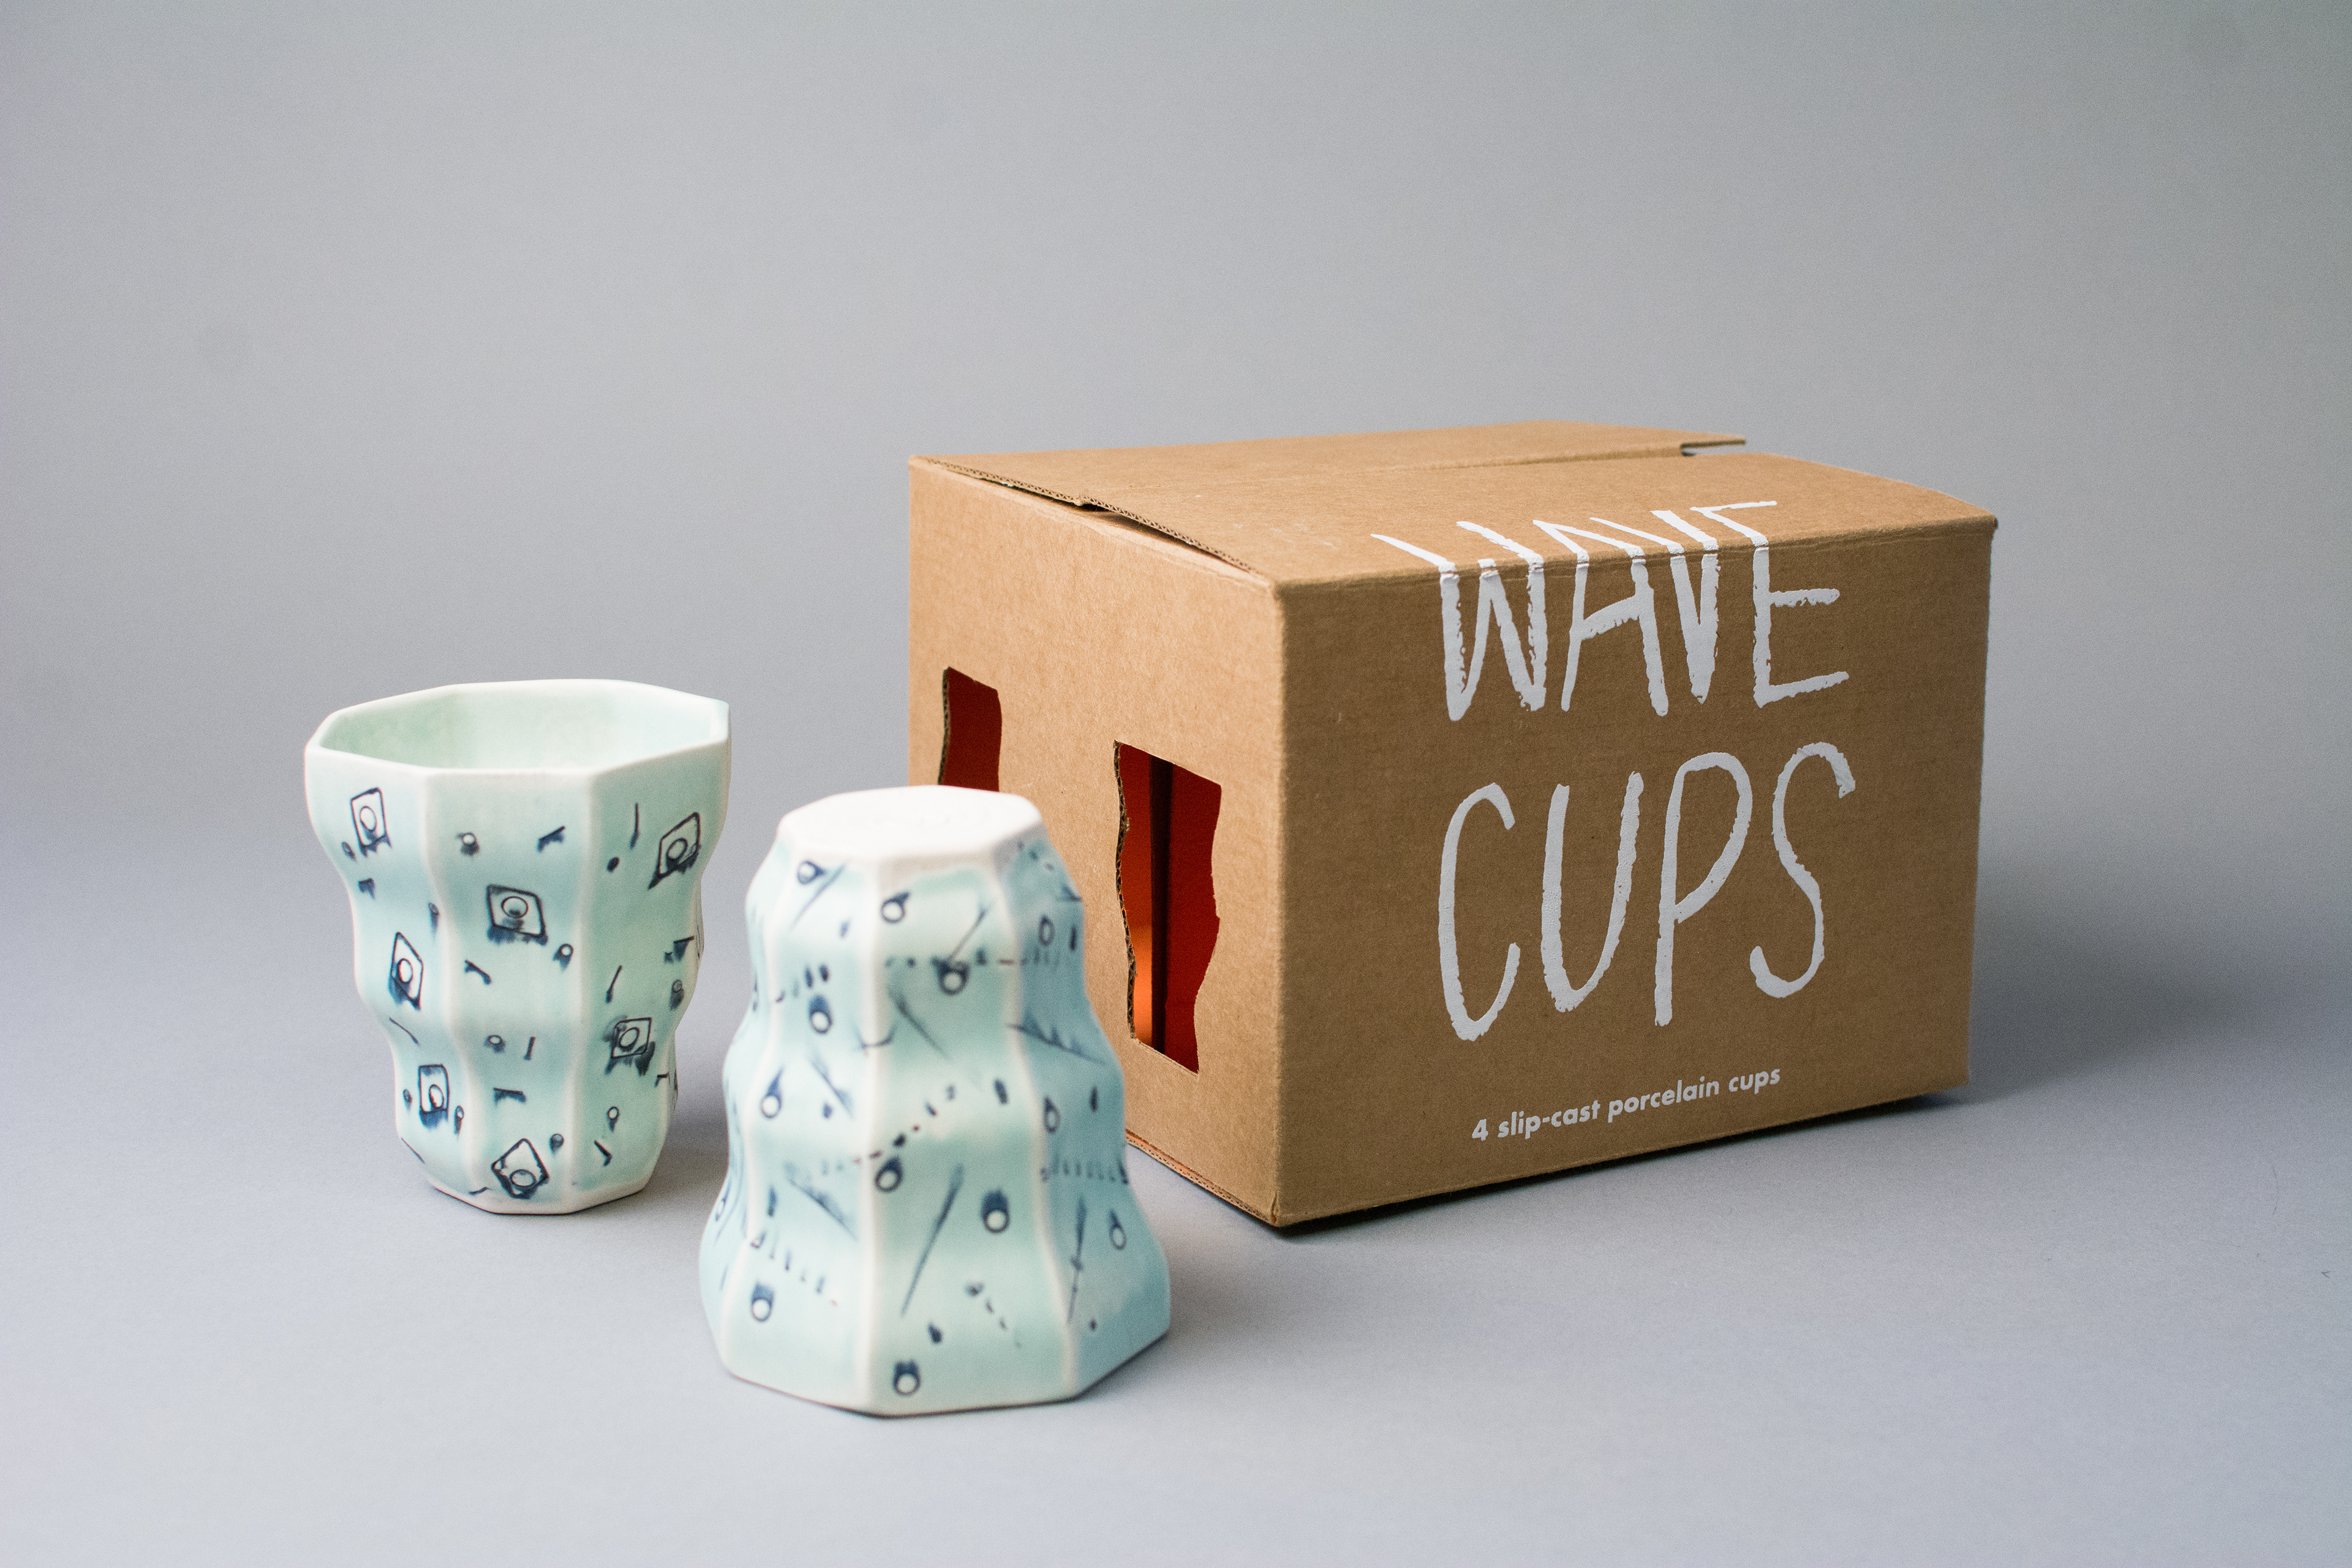 The Product Wave Cups Handmade